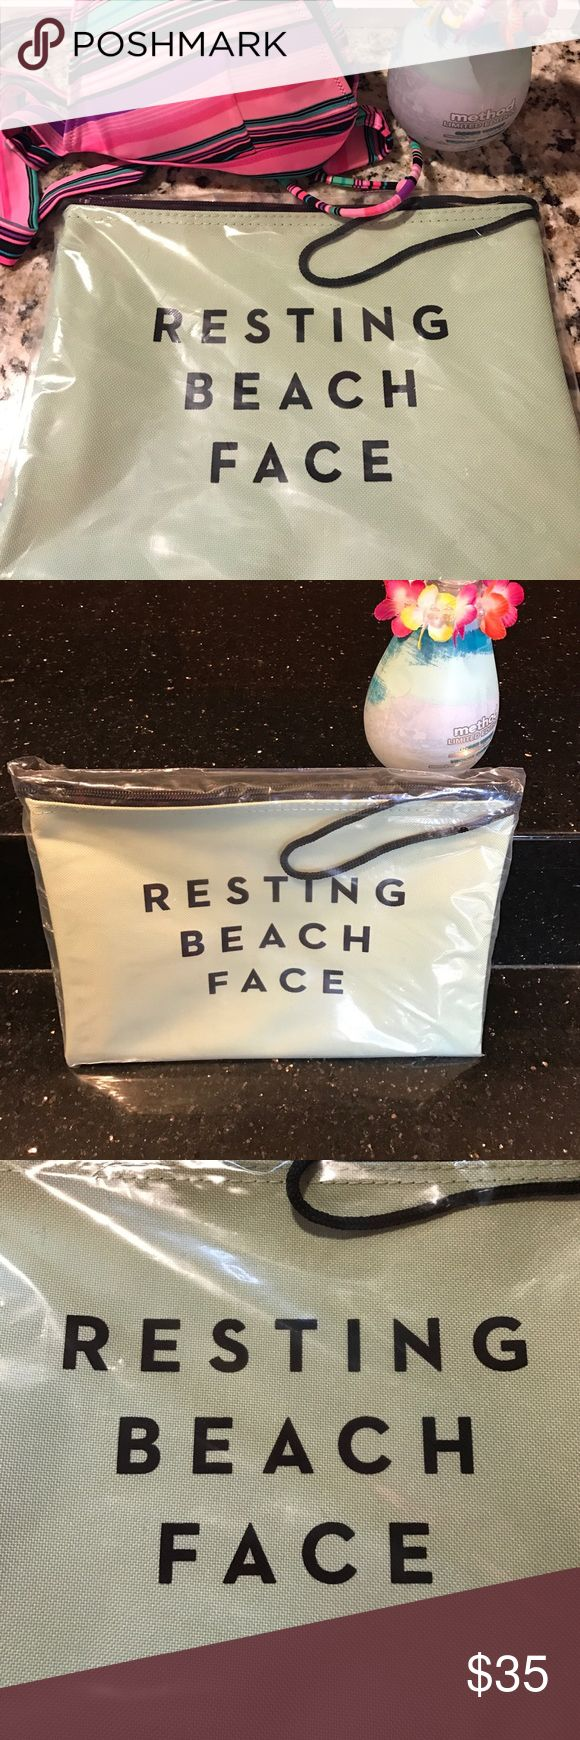 Milly Zip Pouch in original packaging Spring break and summer mean traveling with wet suits are inevitable. Keep your suits safe and away from other valuables with this water resistant bag! It also makes a great bag to hold your liquid beauty products! Milly Accessories